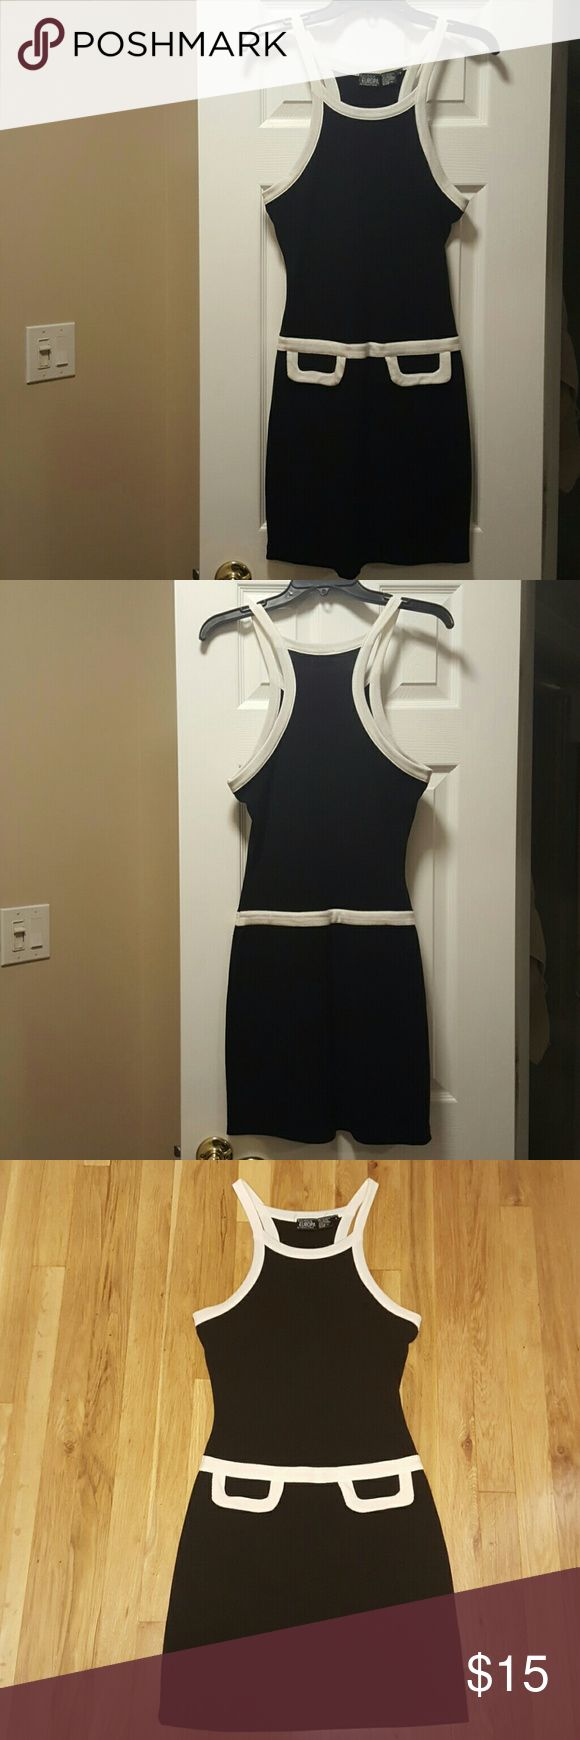 Boutique Europa Dress Black and white boutique Europa by Newport News racer back dress ..polyester cotton spandex makes it so soft and comfortable but very figure flattering boutique Europa  Dresses